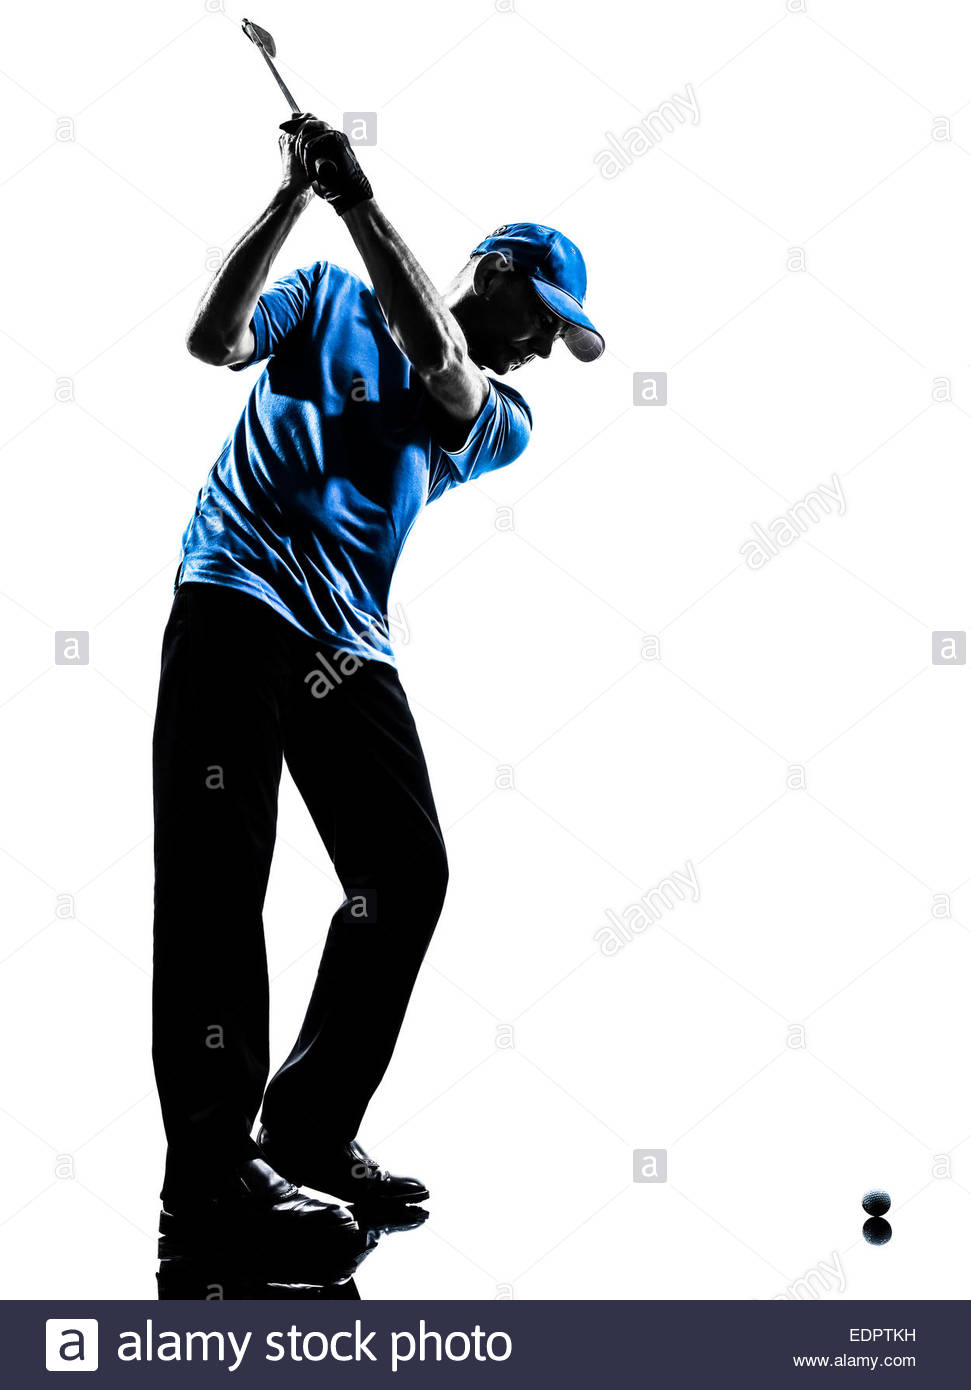 971x1390e Man Golfer Golfing Golf Swing In Silhouette Studio Isolated